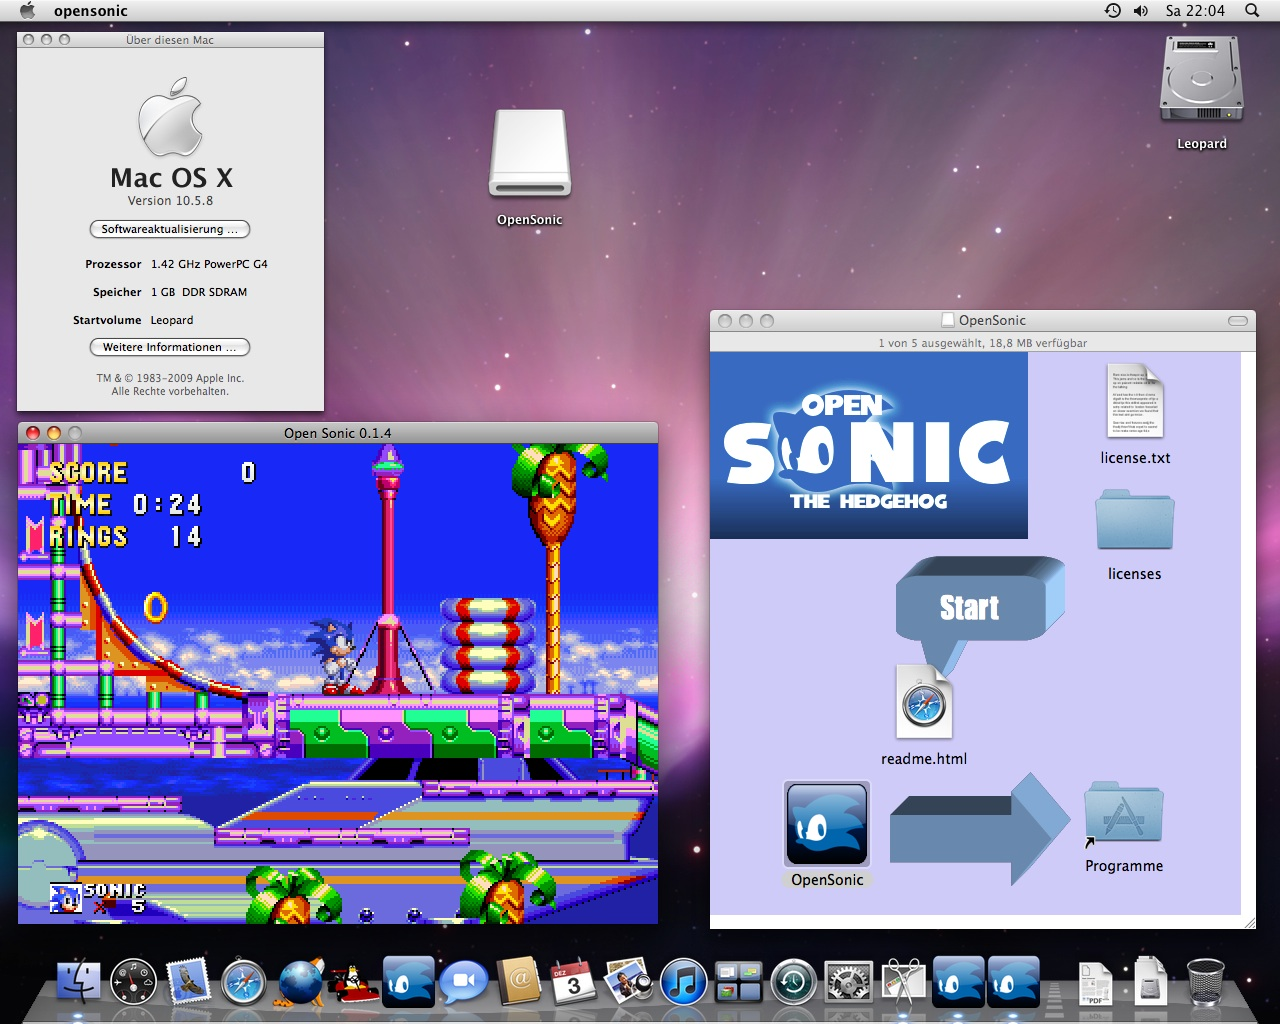 Open Sonic 0 1 4 for Mac OS X (Page 1) - General - Open Surge